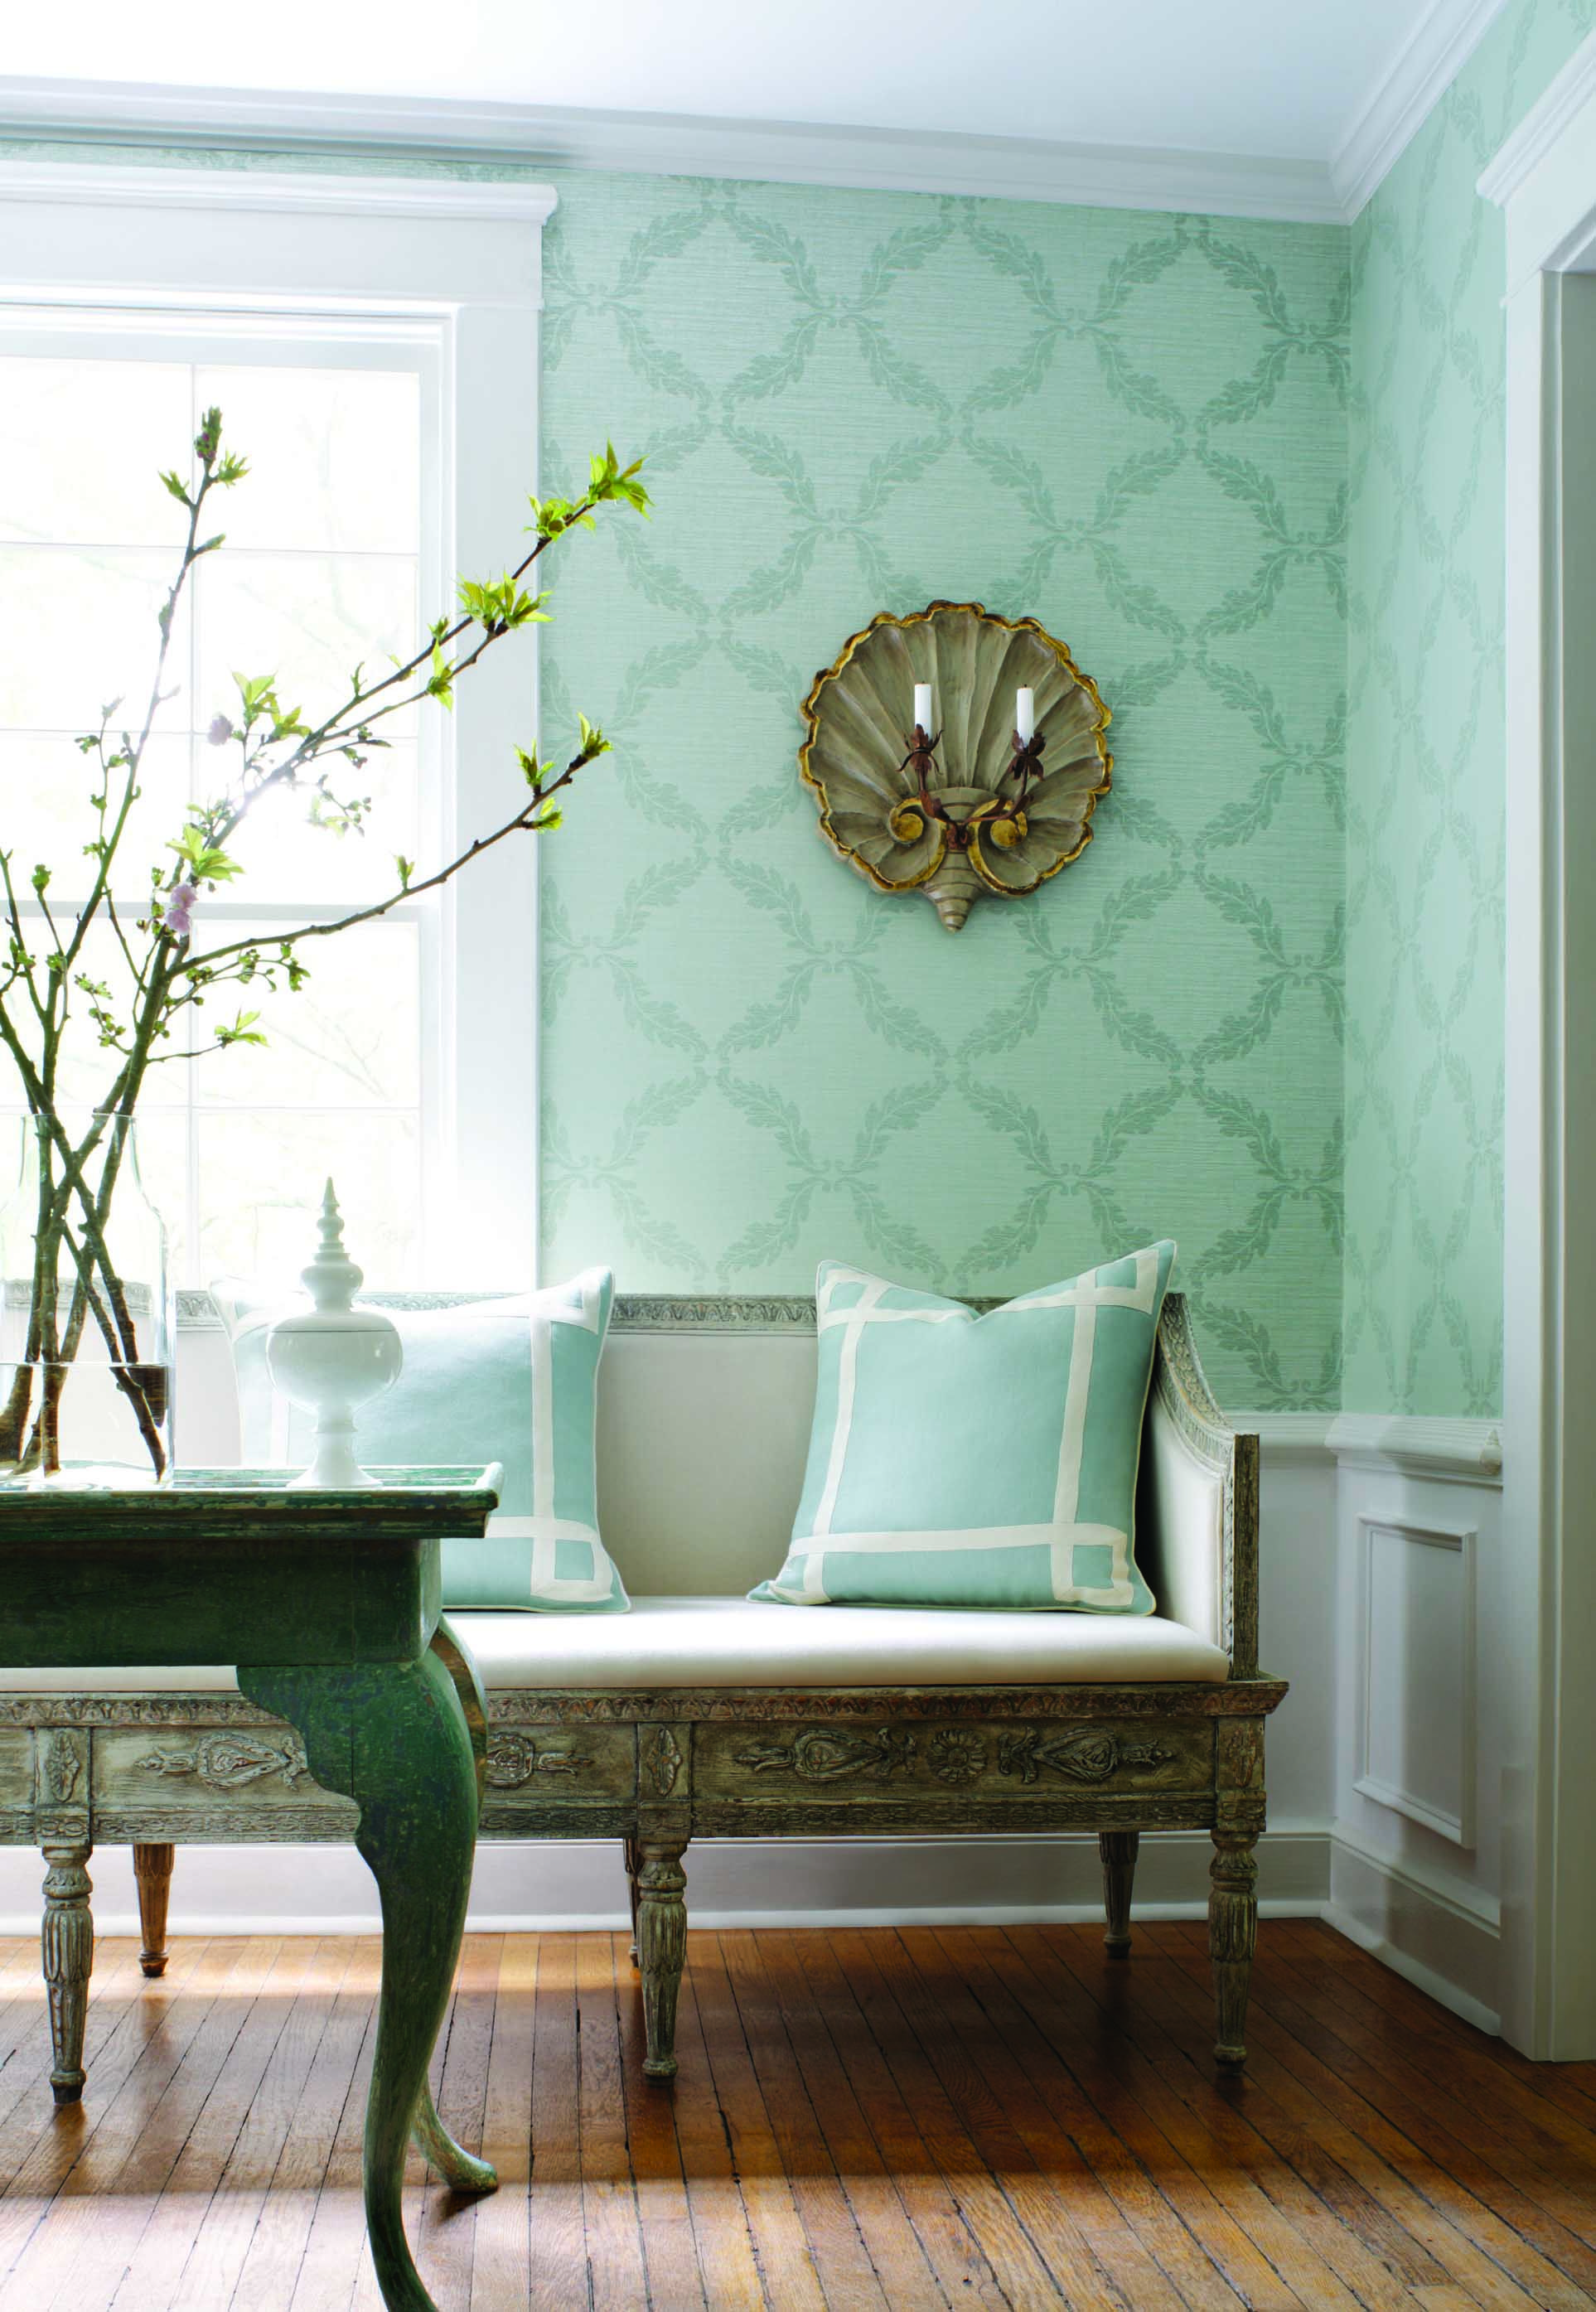 Antoine Trellis #Wallpaper In #Aqua From The Damask Resource 3